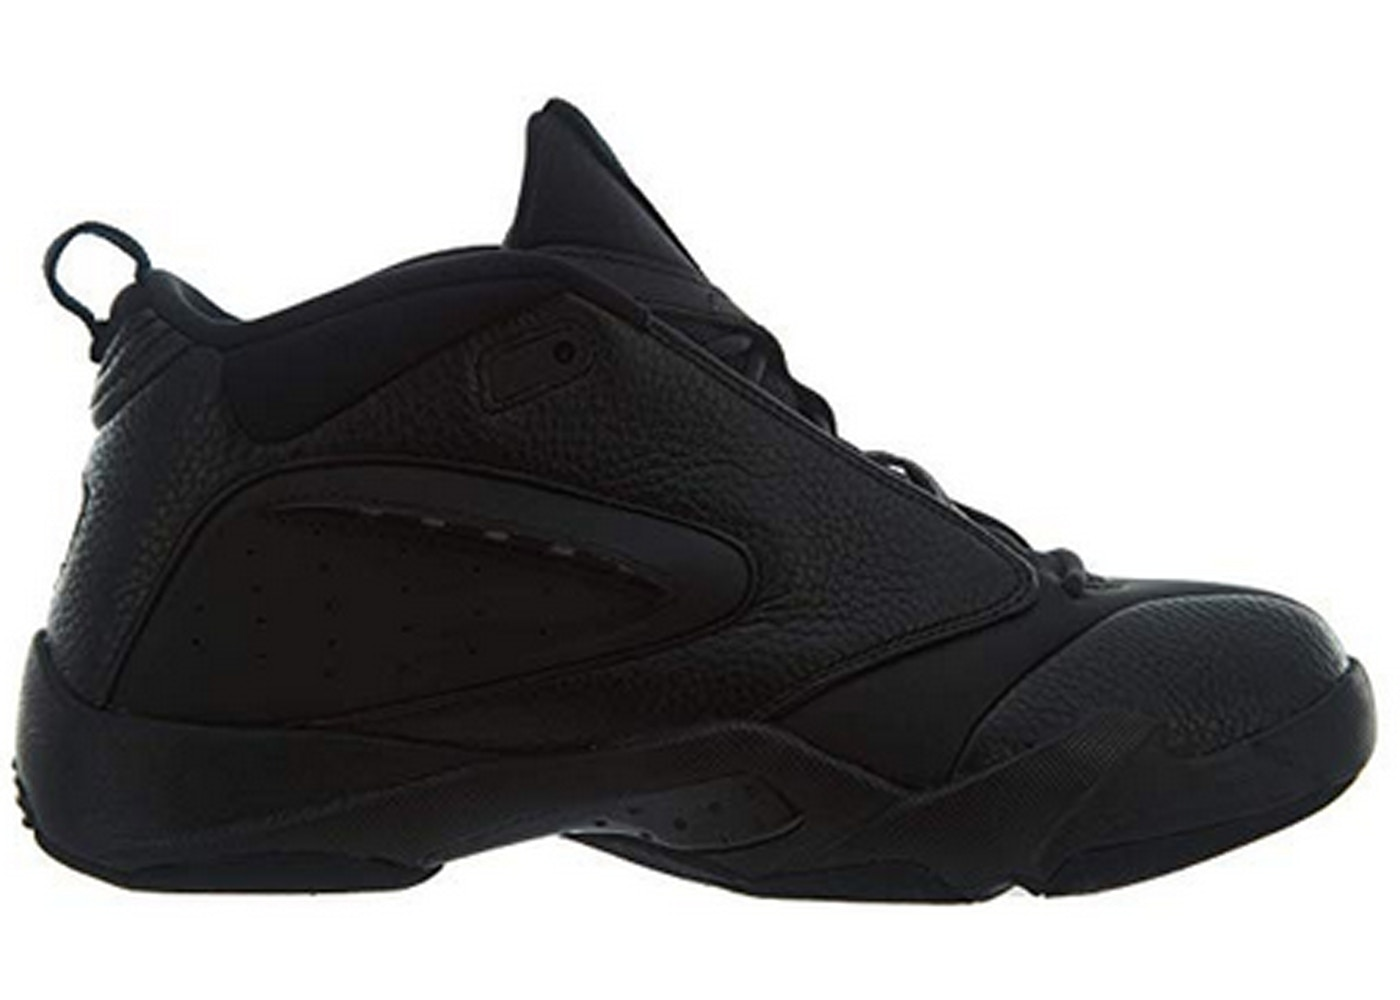 58fe26982cc Jordan Jumpman Quick 23 Triple Black - AH8109-001